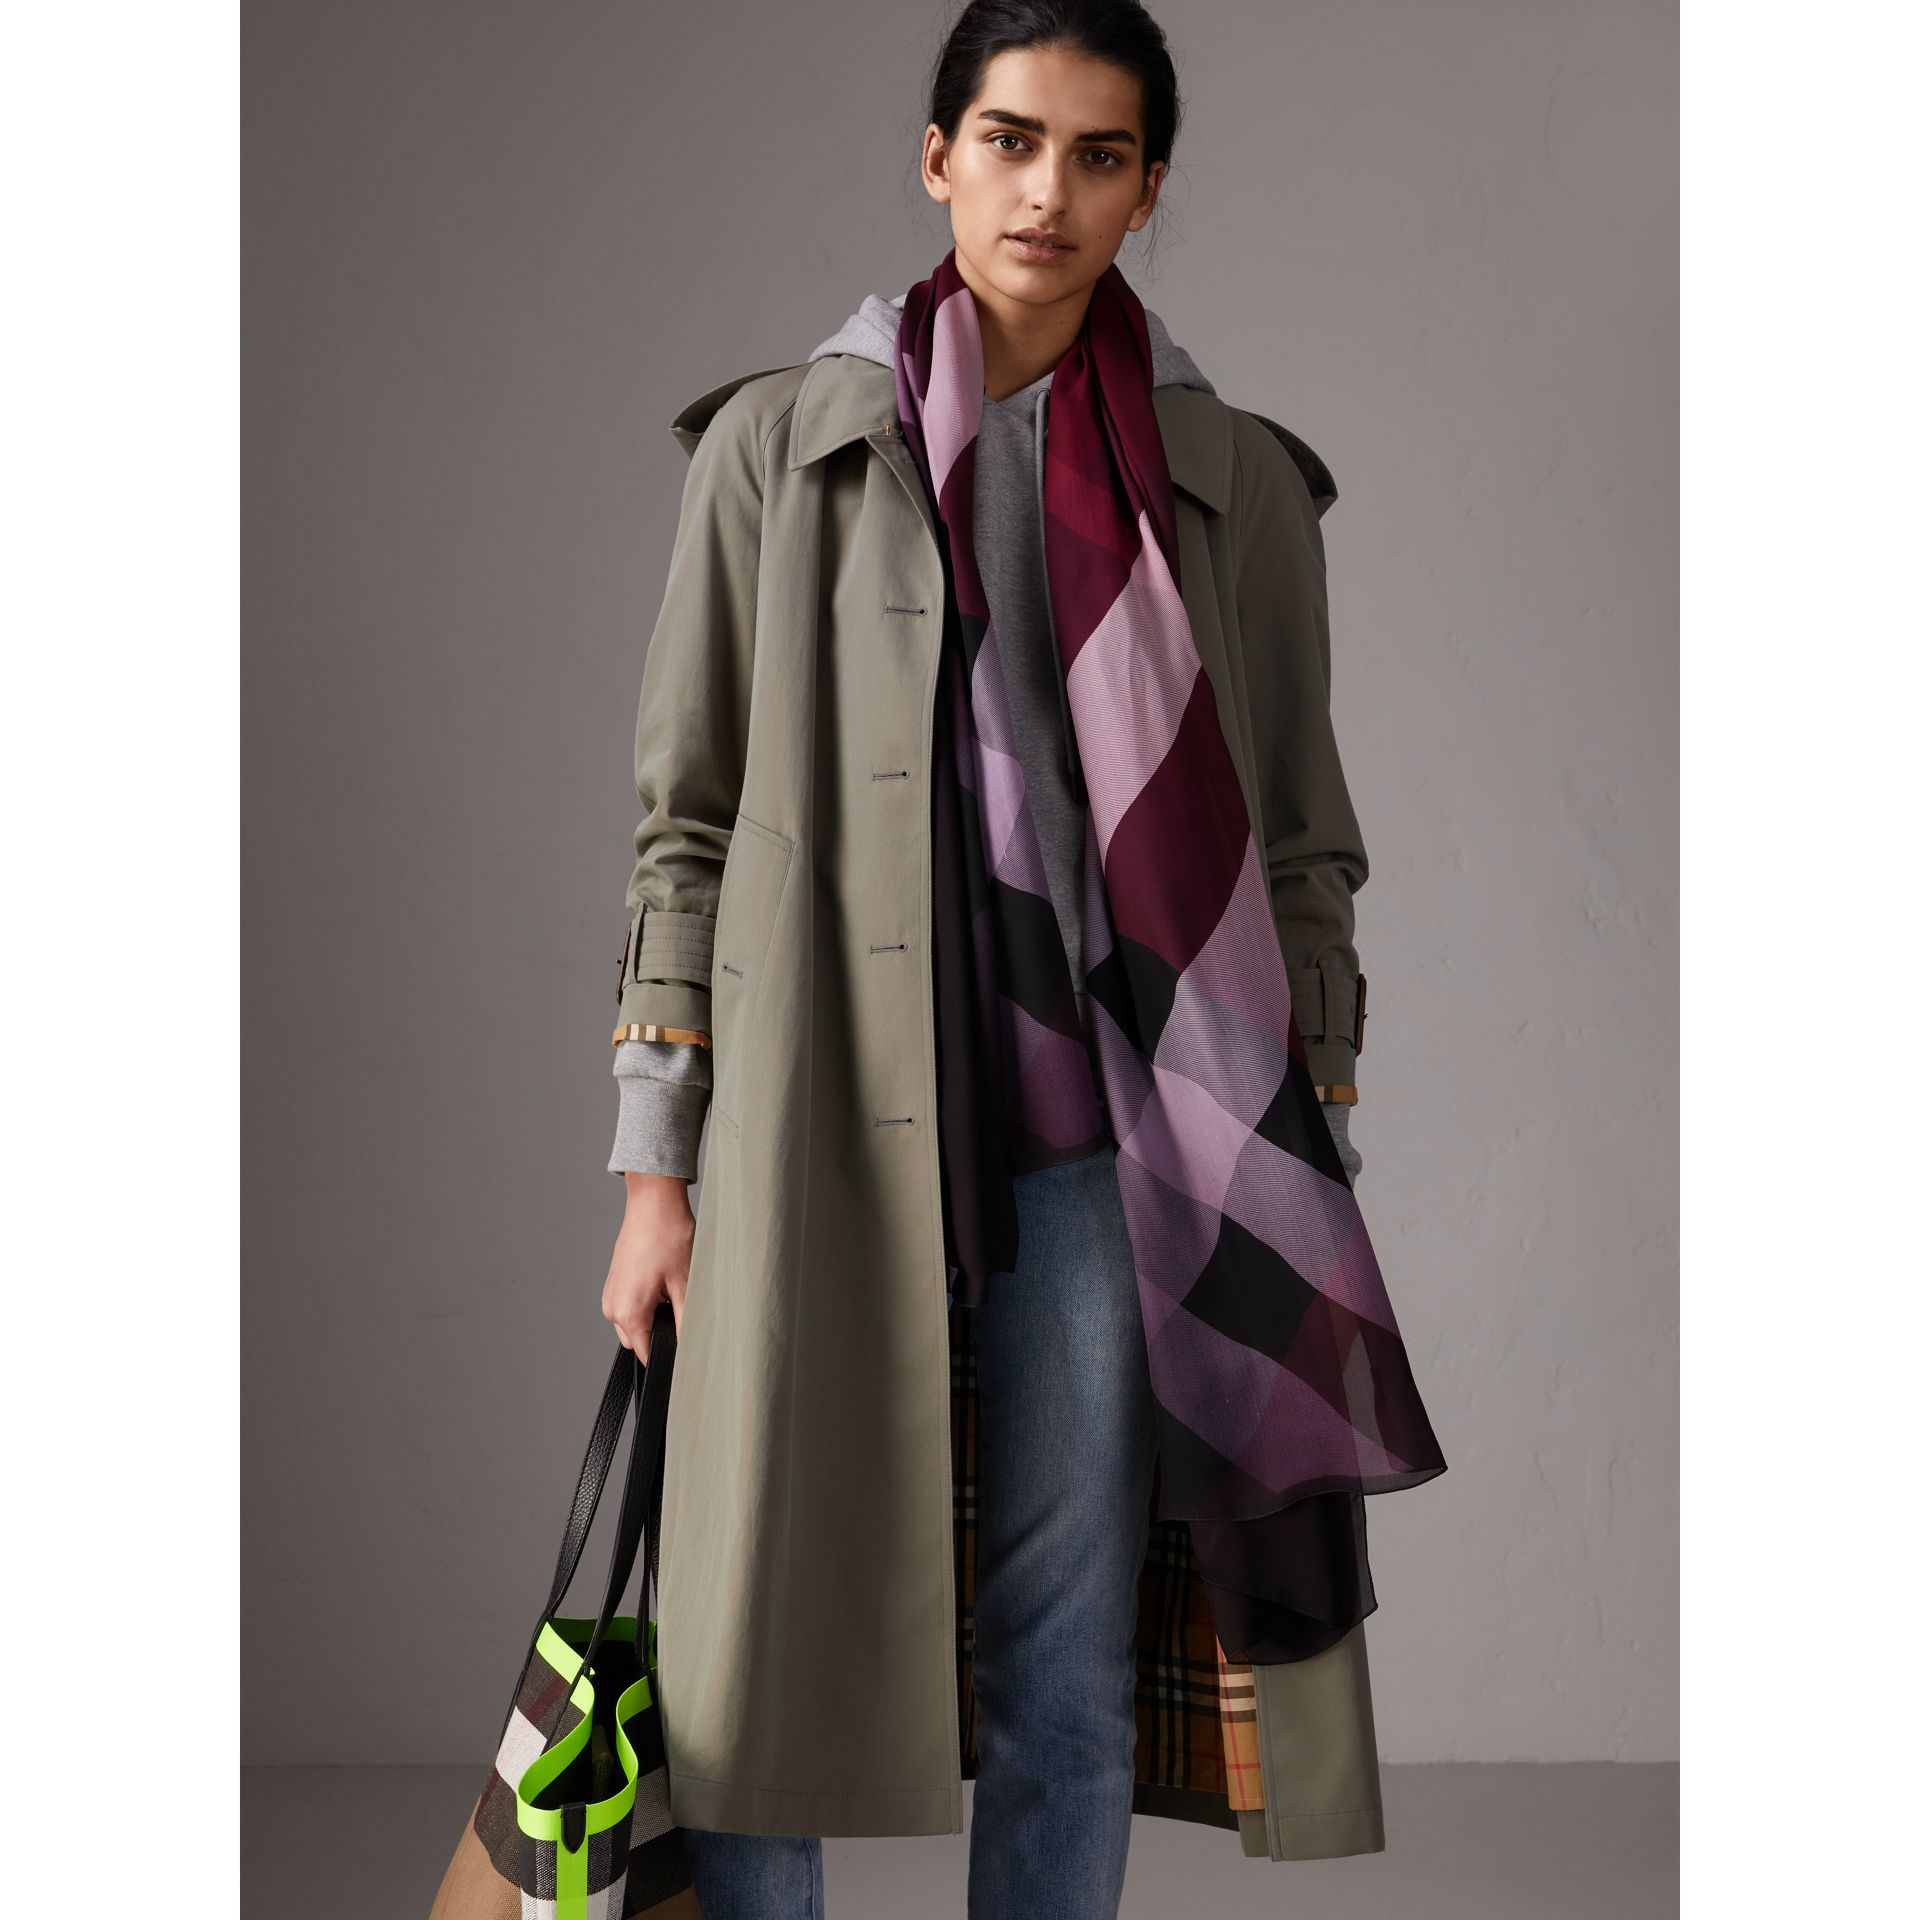 Ombré Washed Check Silk Scarf in Plum - Women | Burberry Singapore - gallery image 3